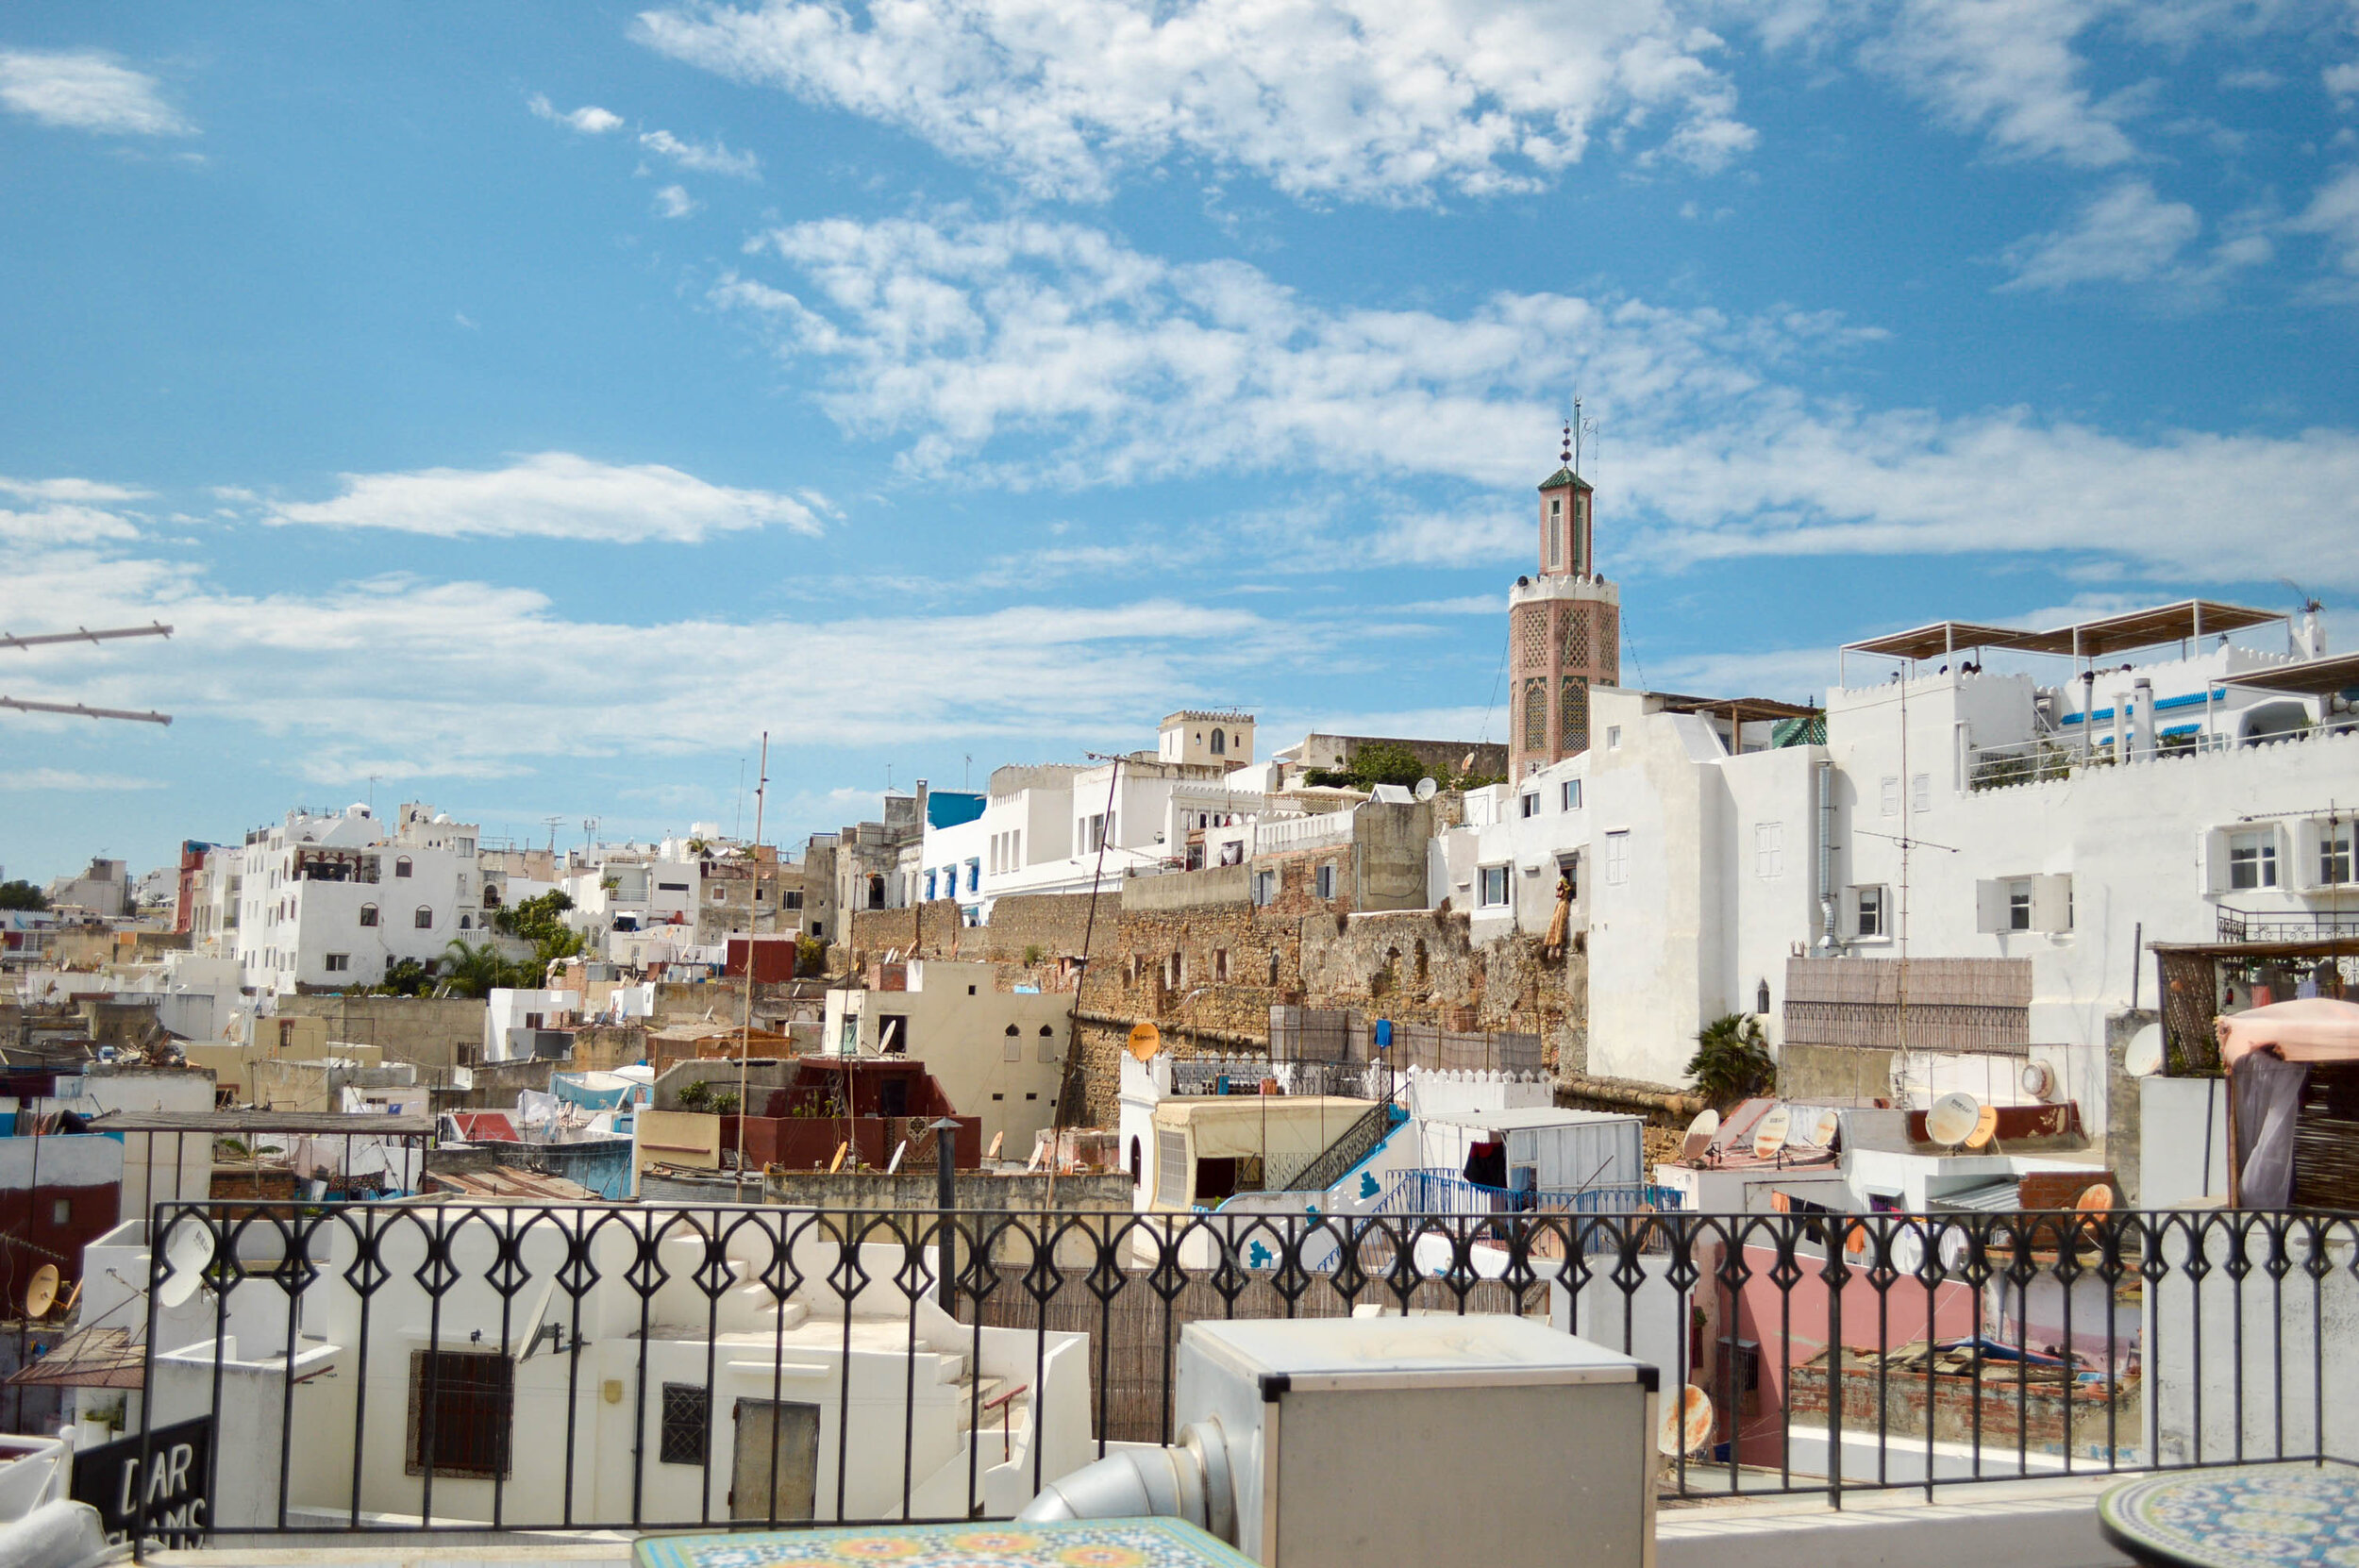 Awesome things you have to do on a day trip to Tangier, Morocco! Traveling from Spain to Tangier is totally worth it, and this guide will help you plan your trip so you can make the most of your limited time! goseekexplore.com